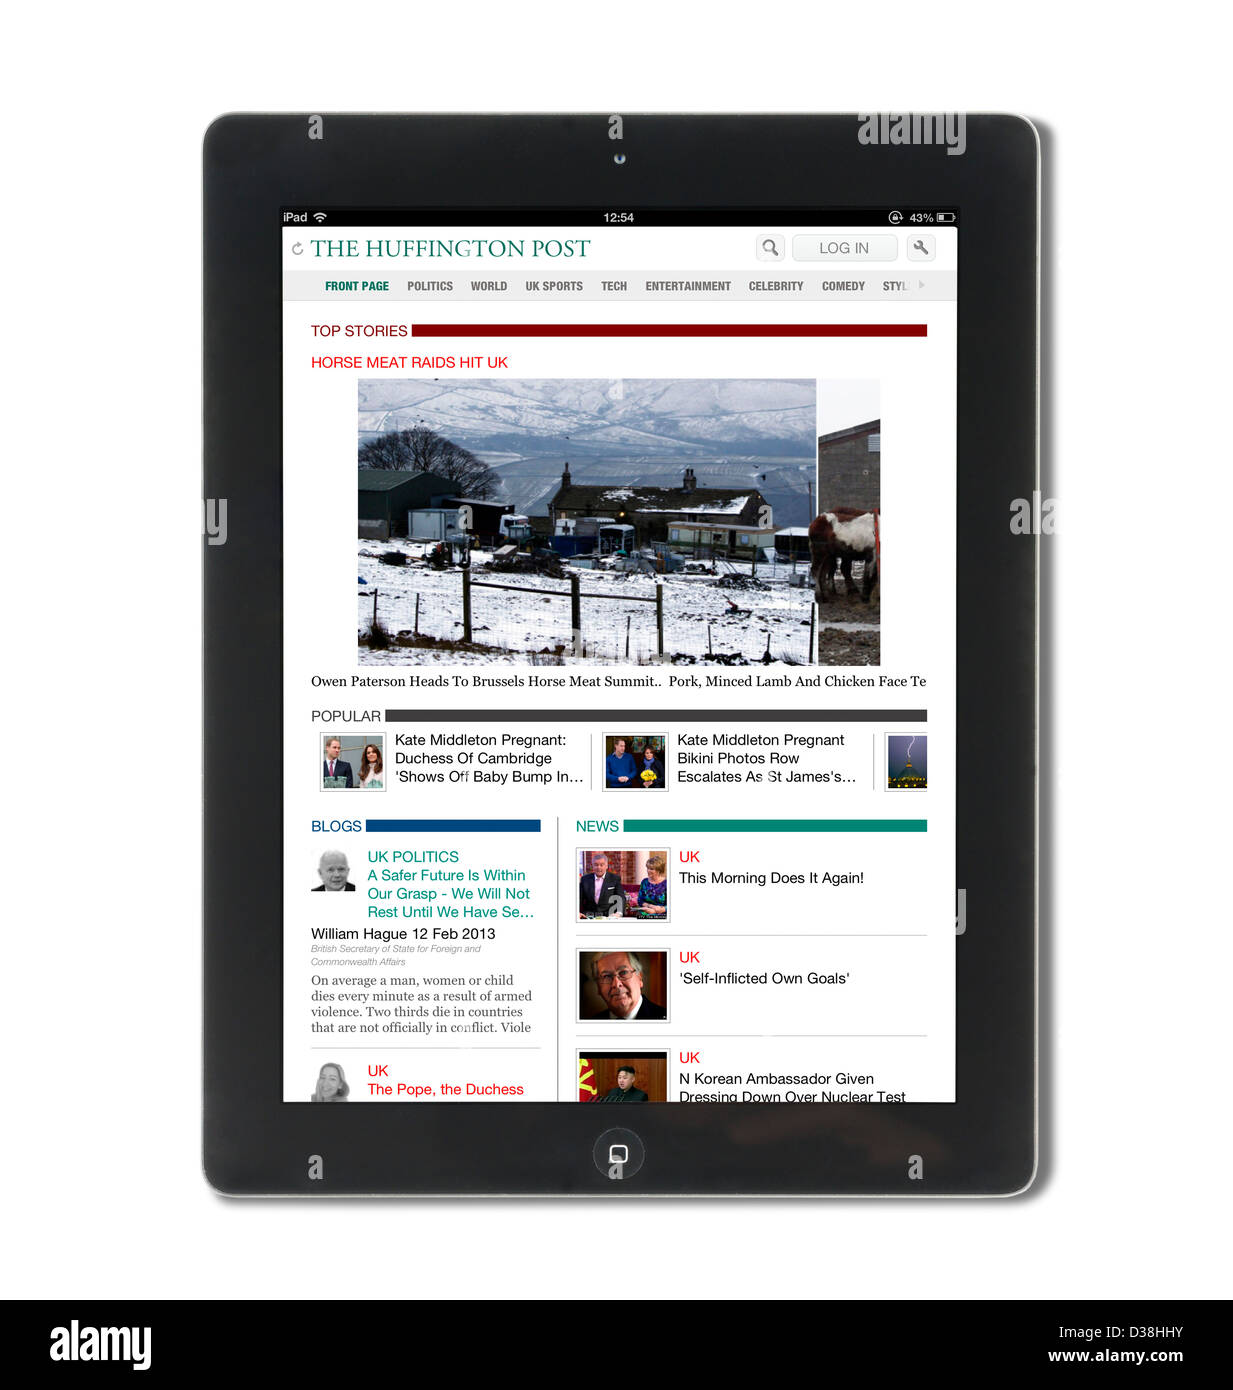 iPad App showing the UK edition of the Huffington Post viewed on a 4th generation Apple iPad, UK - Stock Image